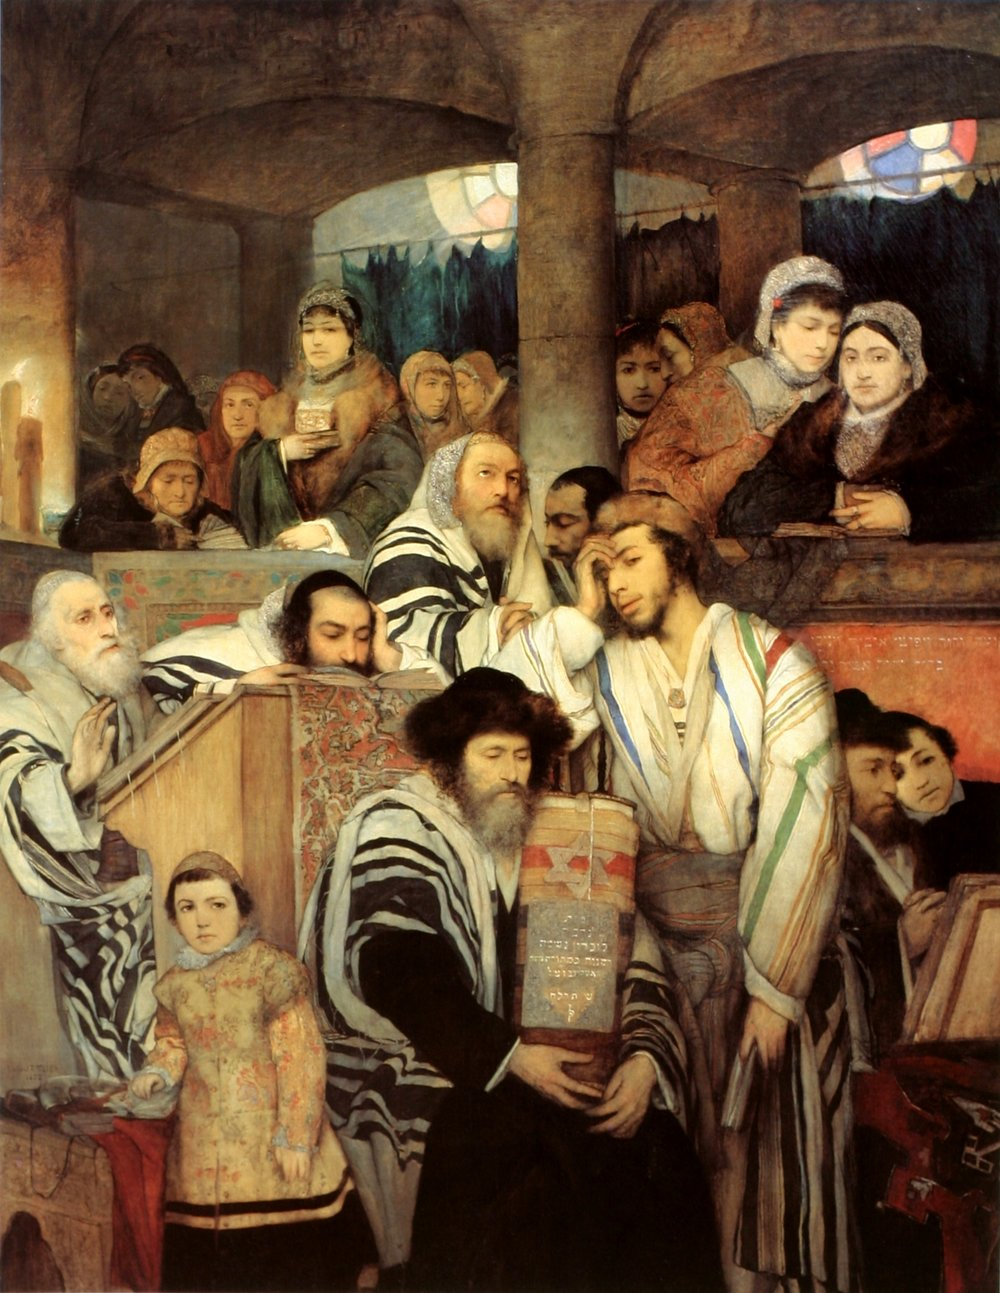 Maurycy_Gottlieb_-_Jews_Praying_in_the_Synagogue_on_Yom_Kippur.jpg